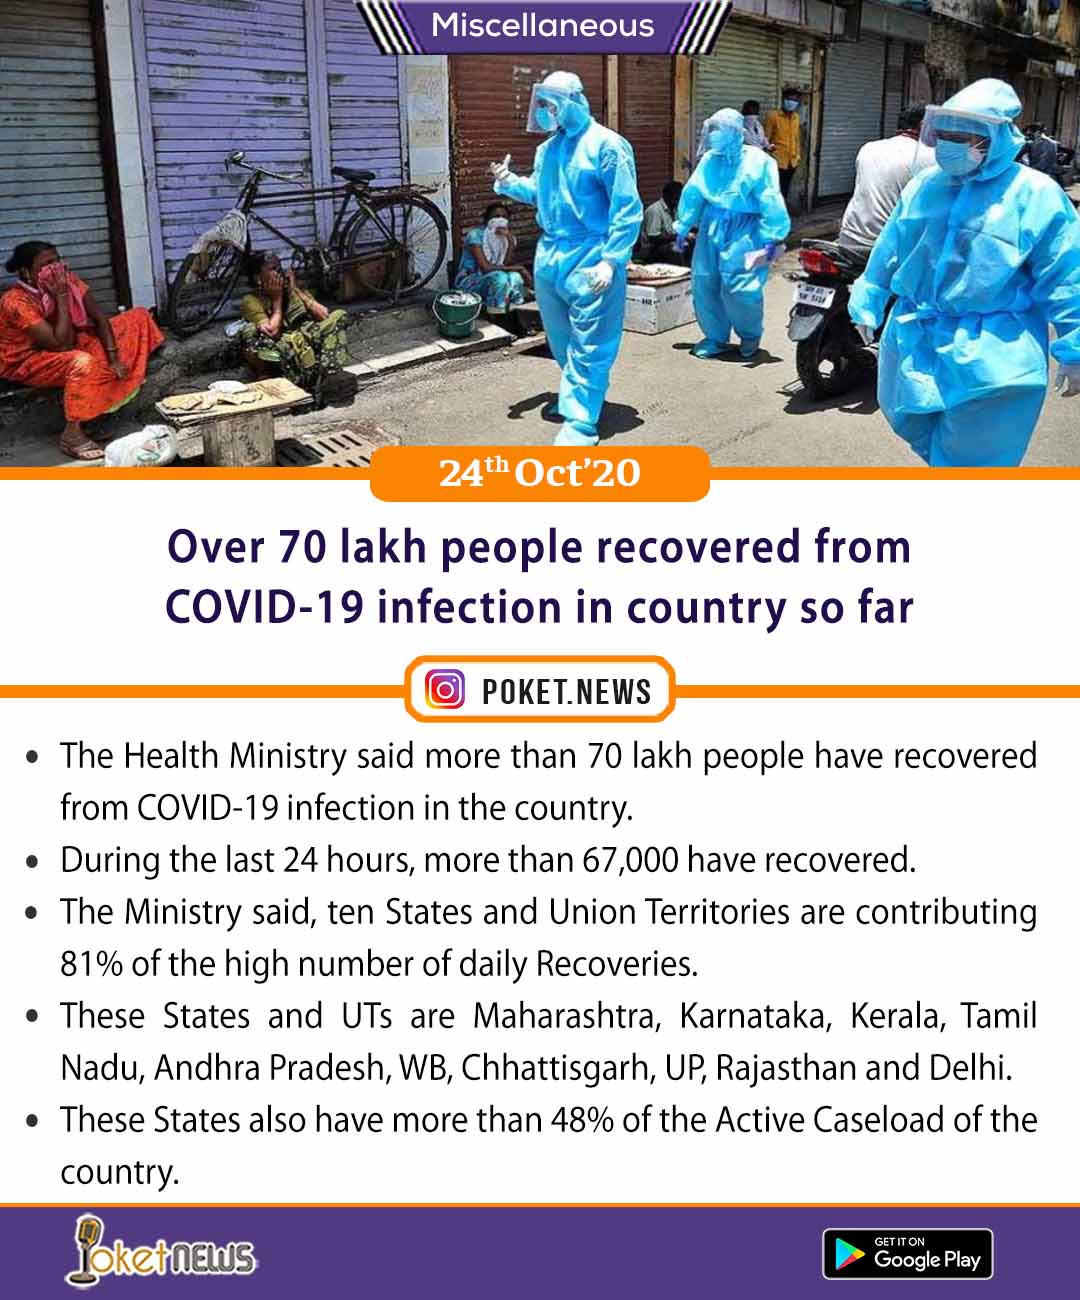 Over 70 lakh people recovered from COVID-19 infection in country so far